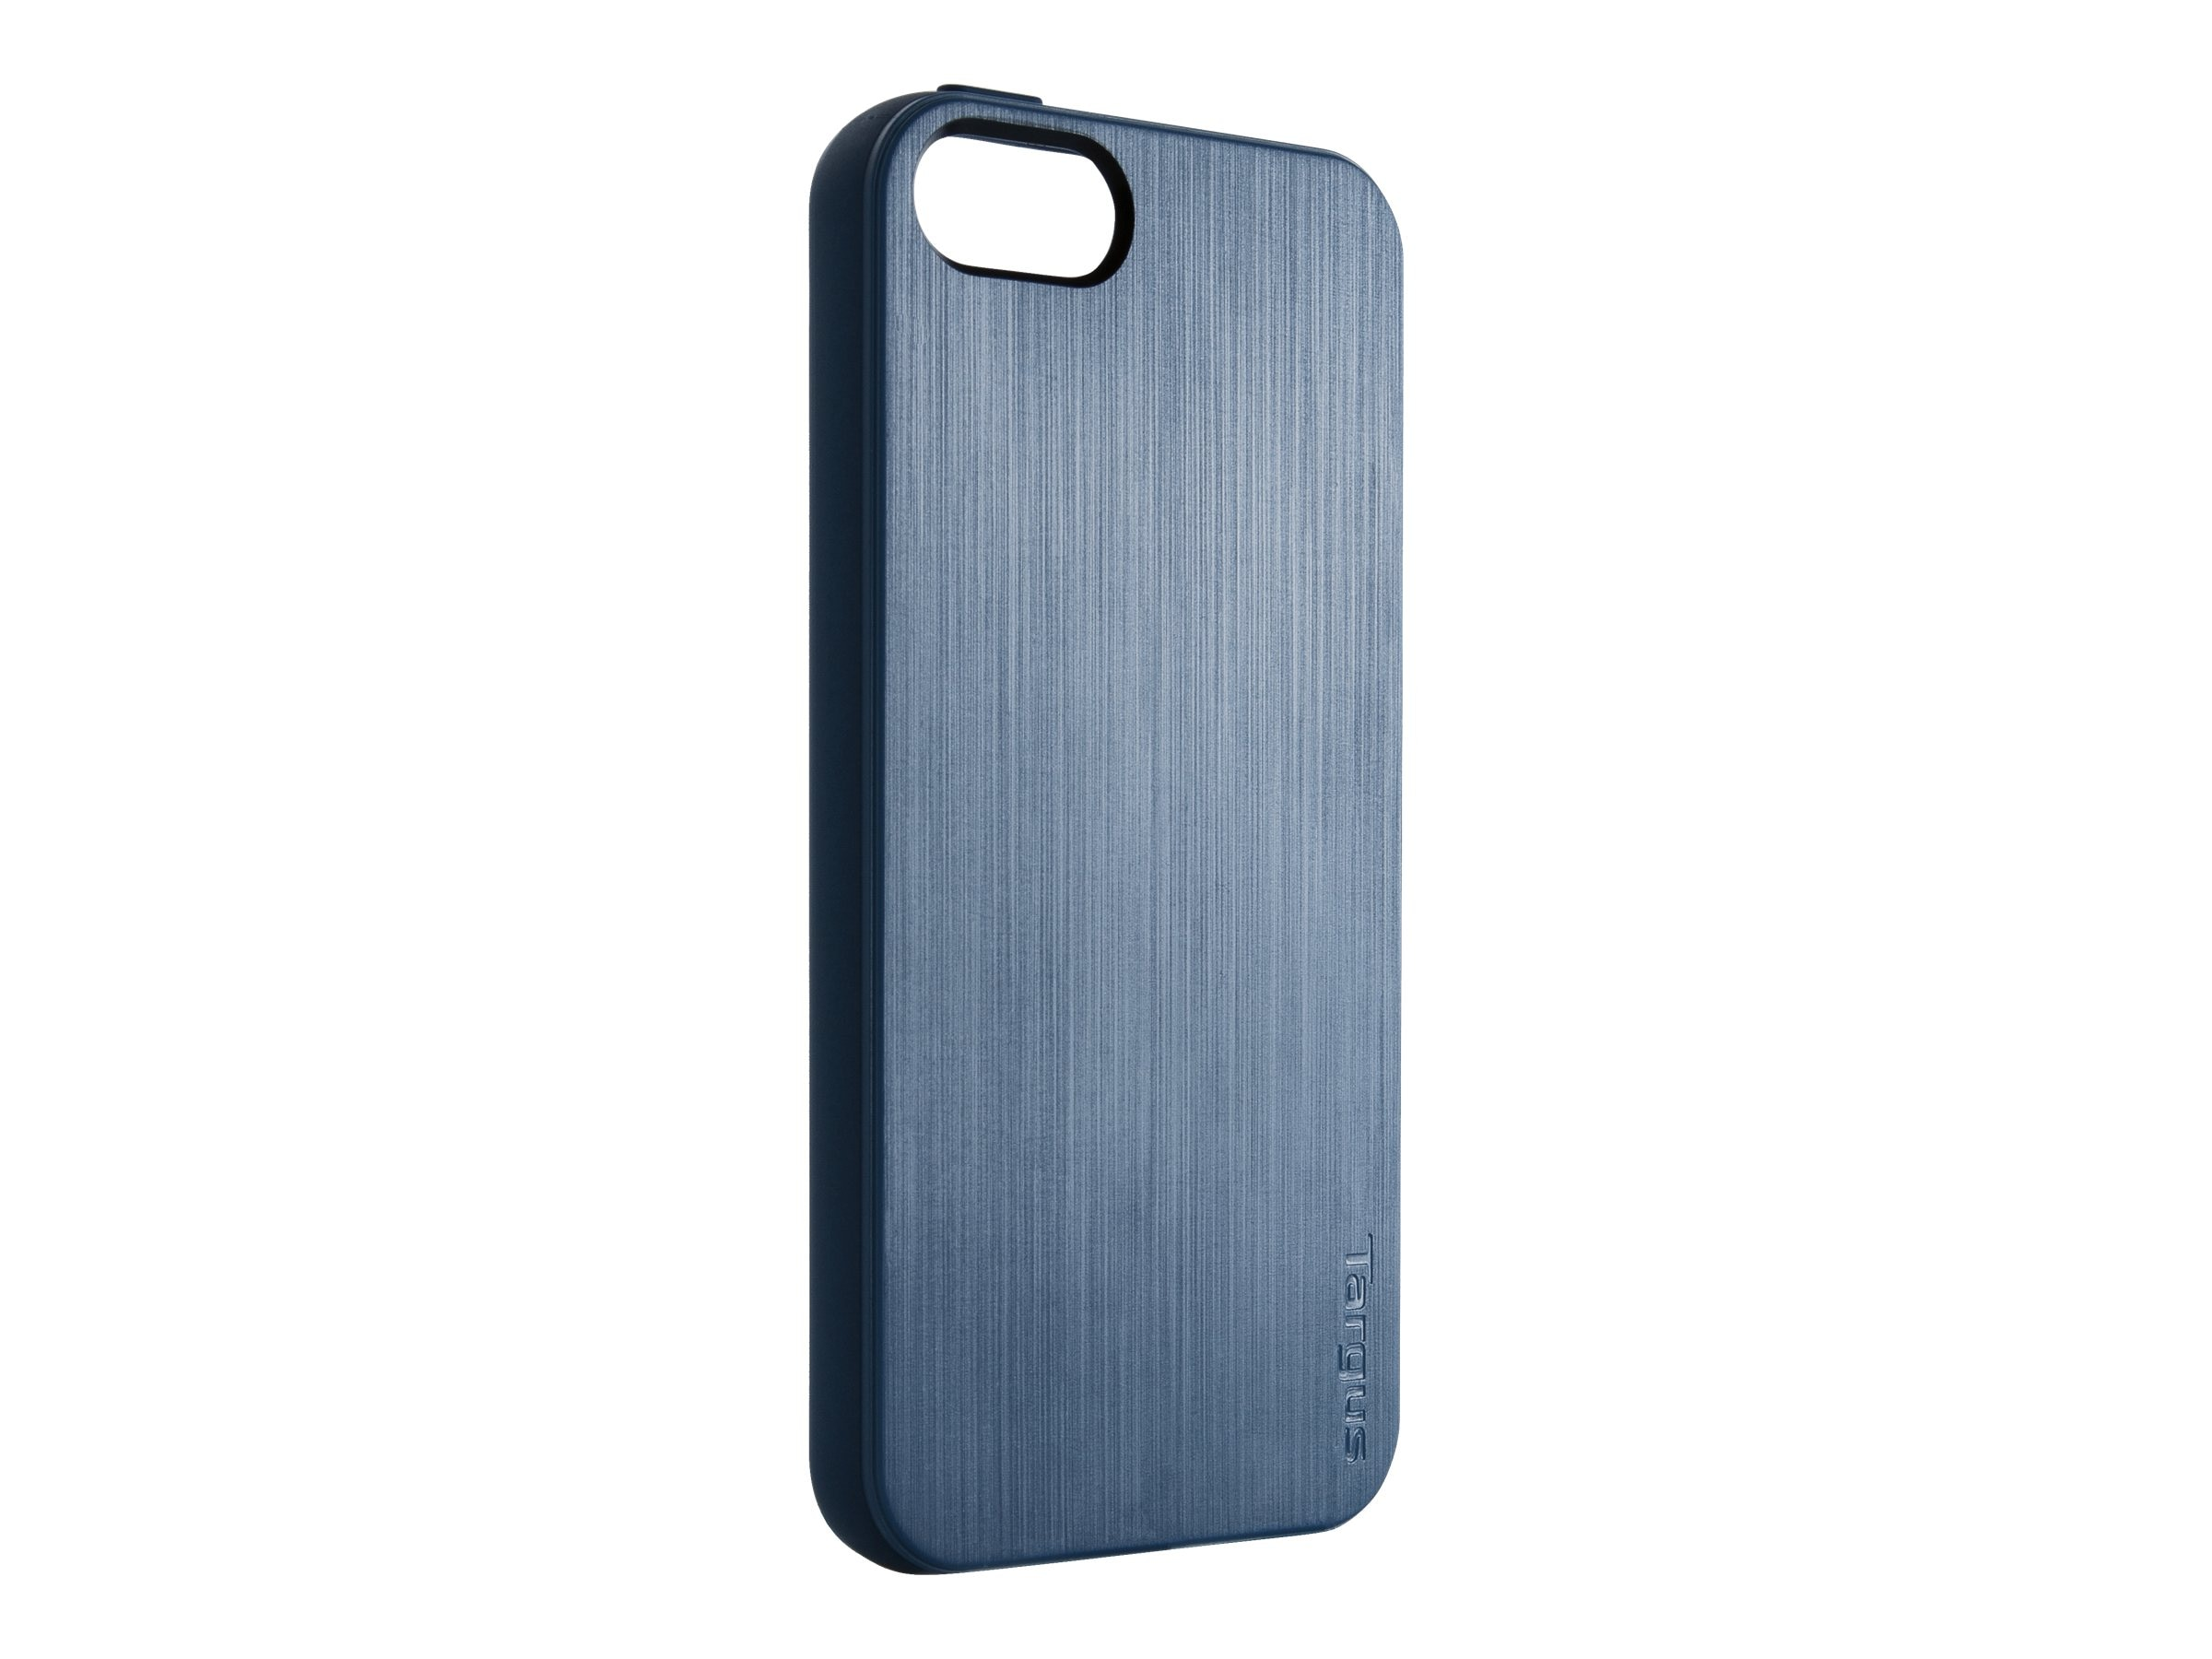 Targus Slim-Fit Back Cover for iPhone 5, Blue